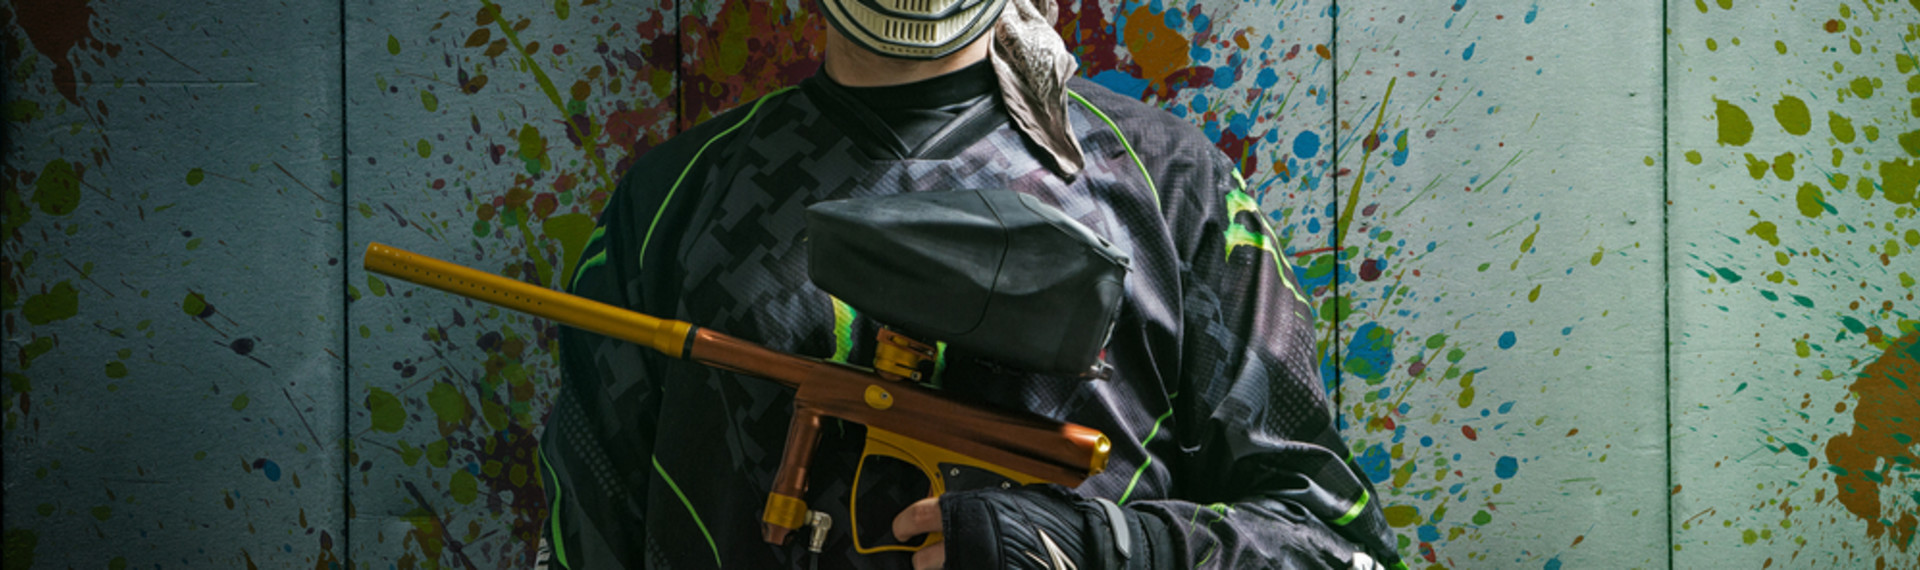 Berlin Paintball Indoor (1 hour) image